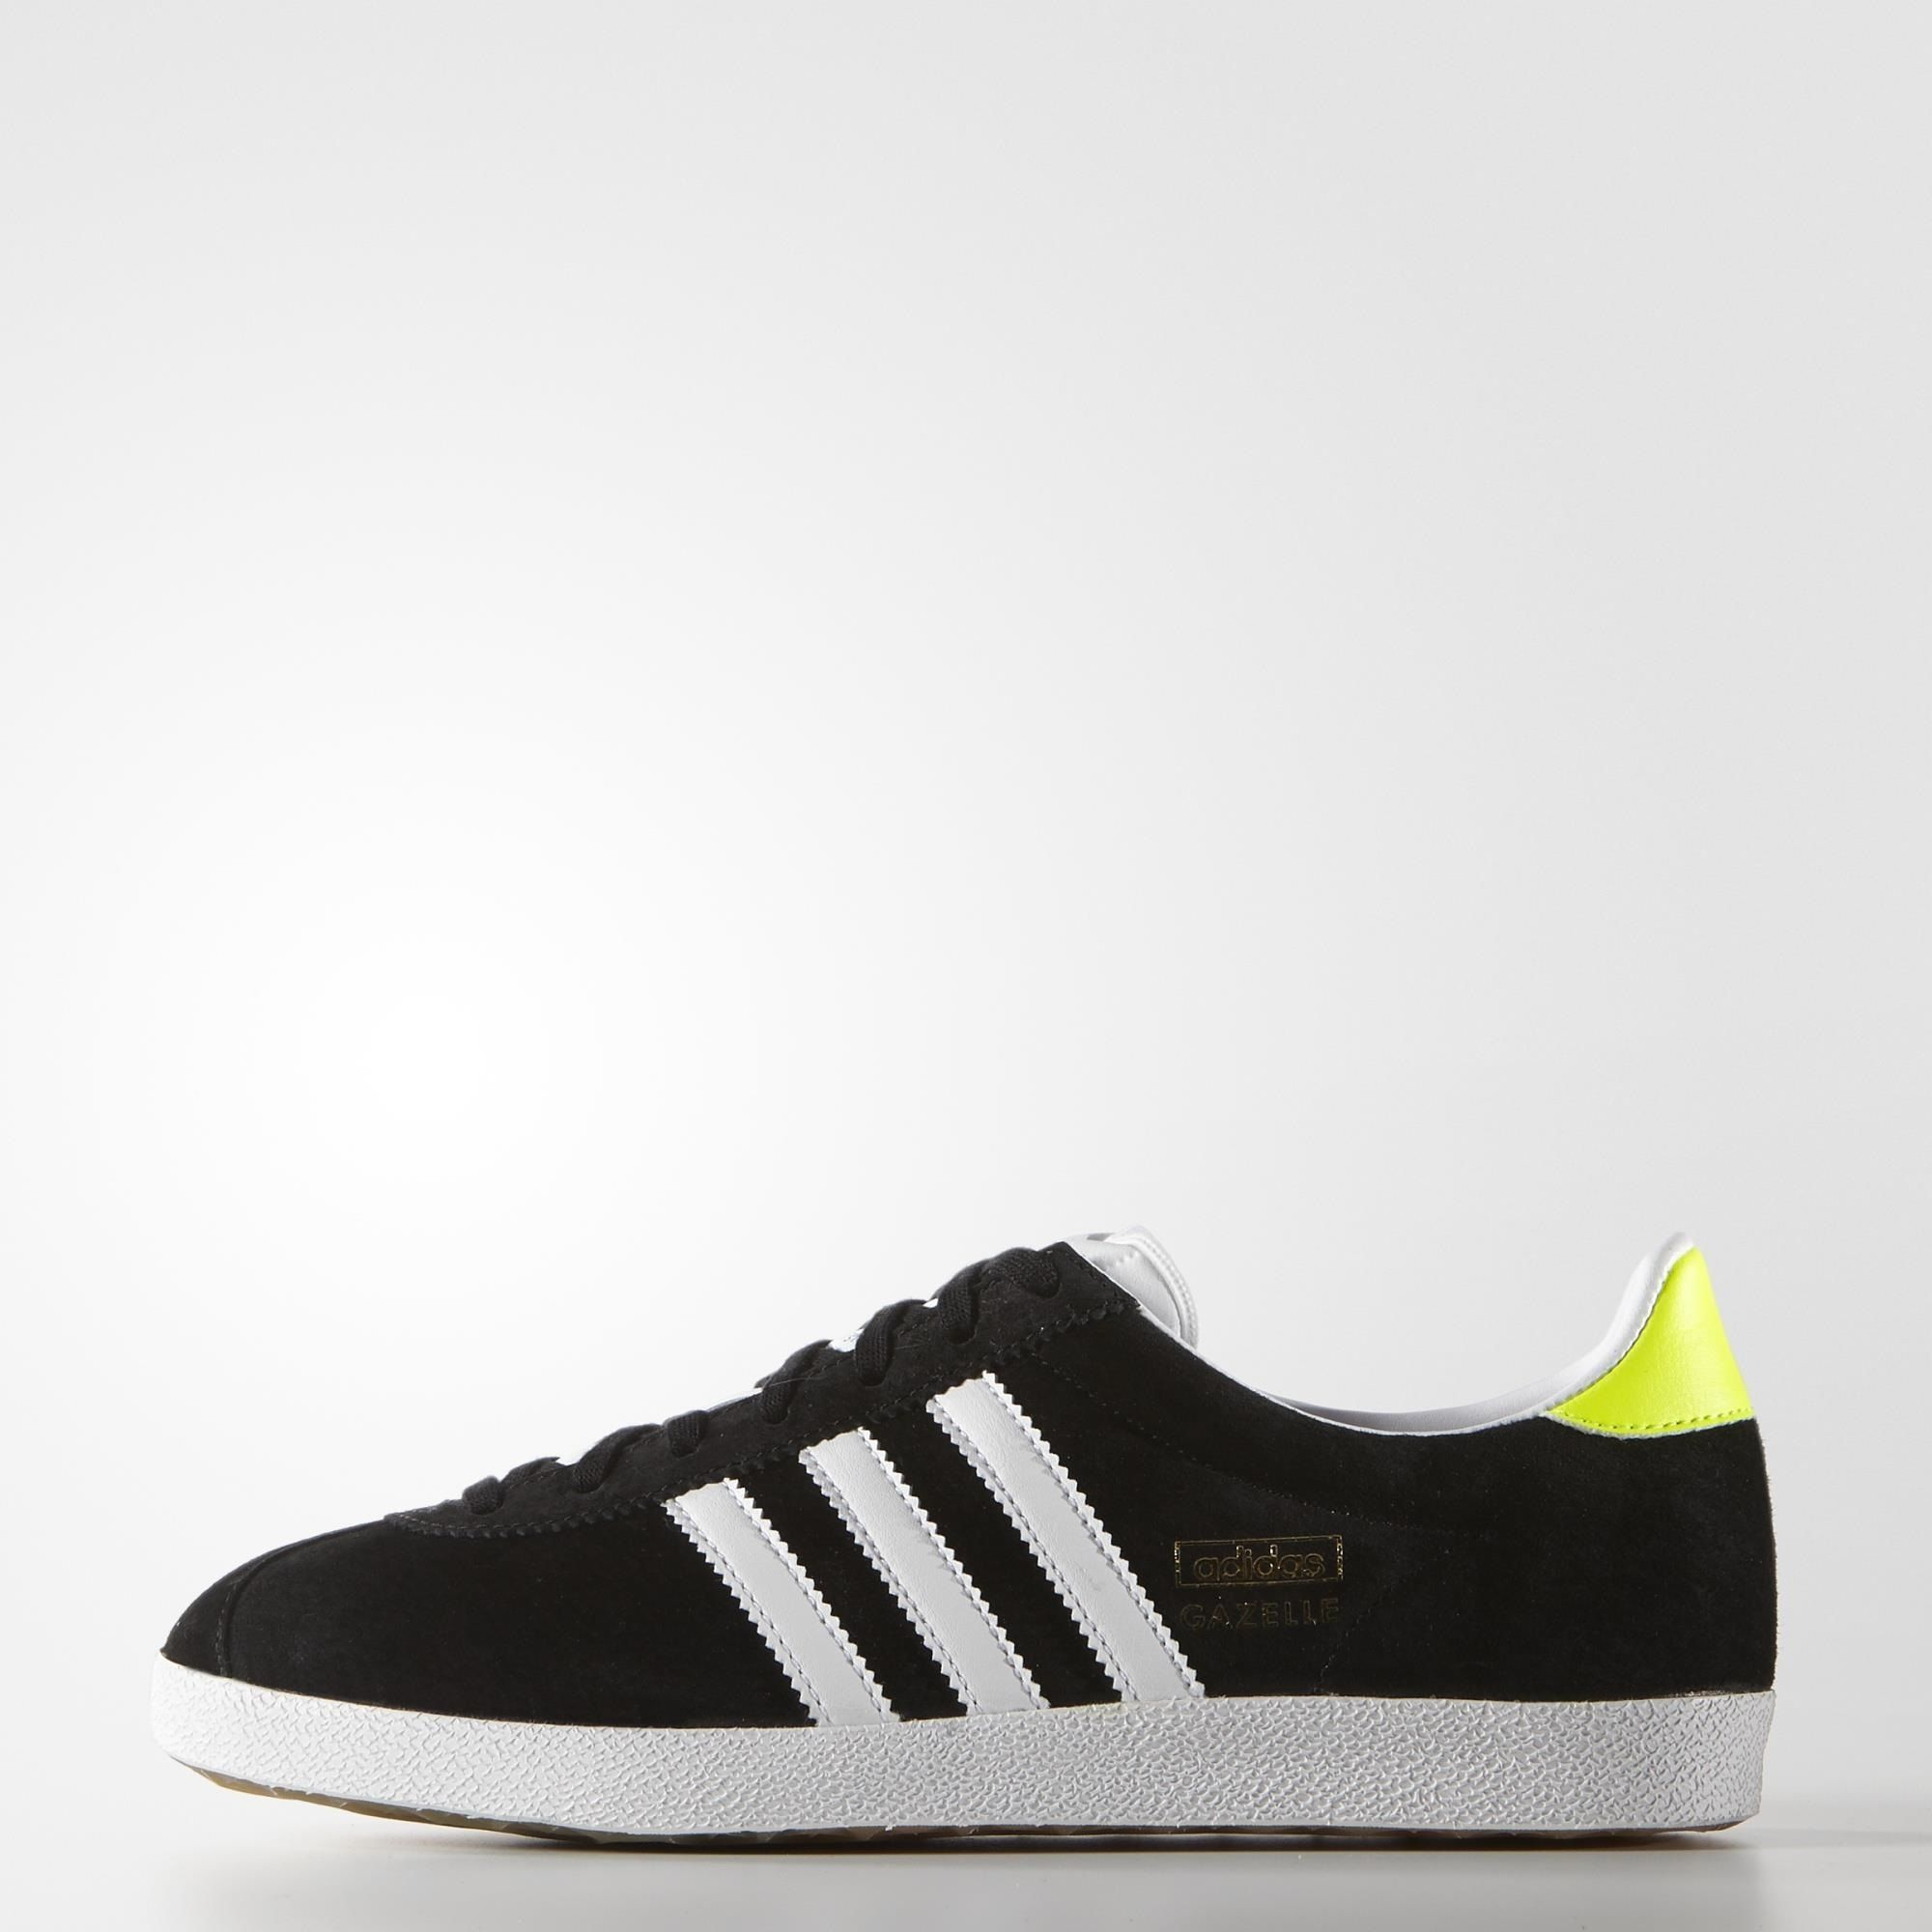 UK Shoes Store - adidas Gazelle Og Sneakers woman Basses Black (Core Black / White / Gold Met)